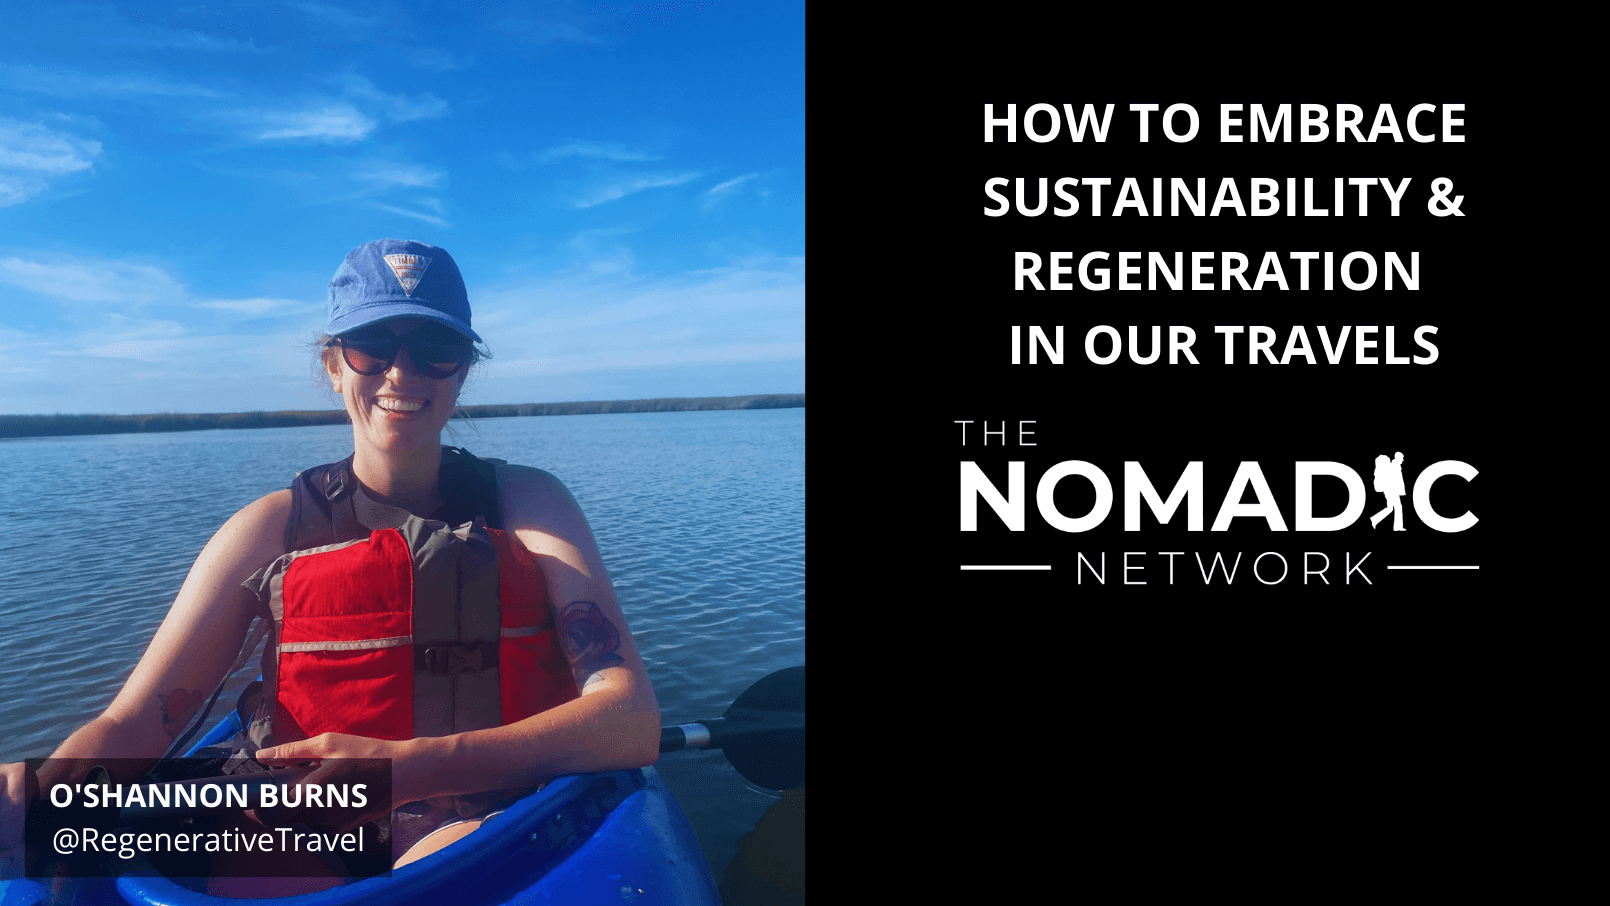 sustainable travel expert o'shannon burns kayaks on the river abroad